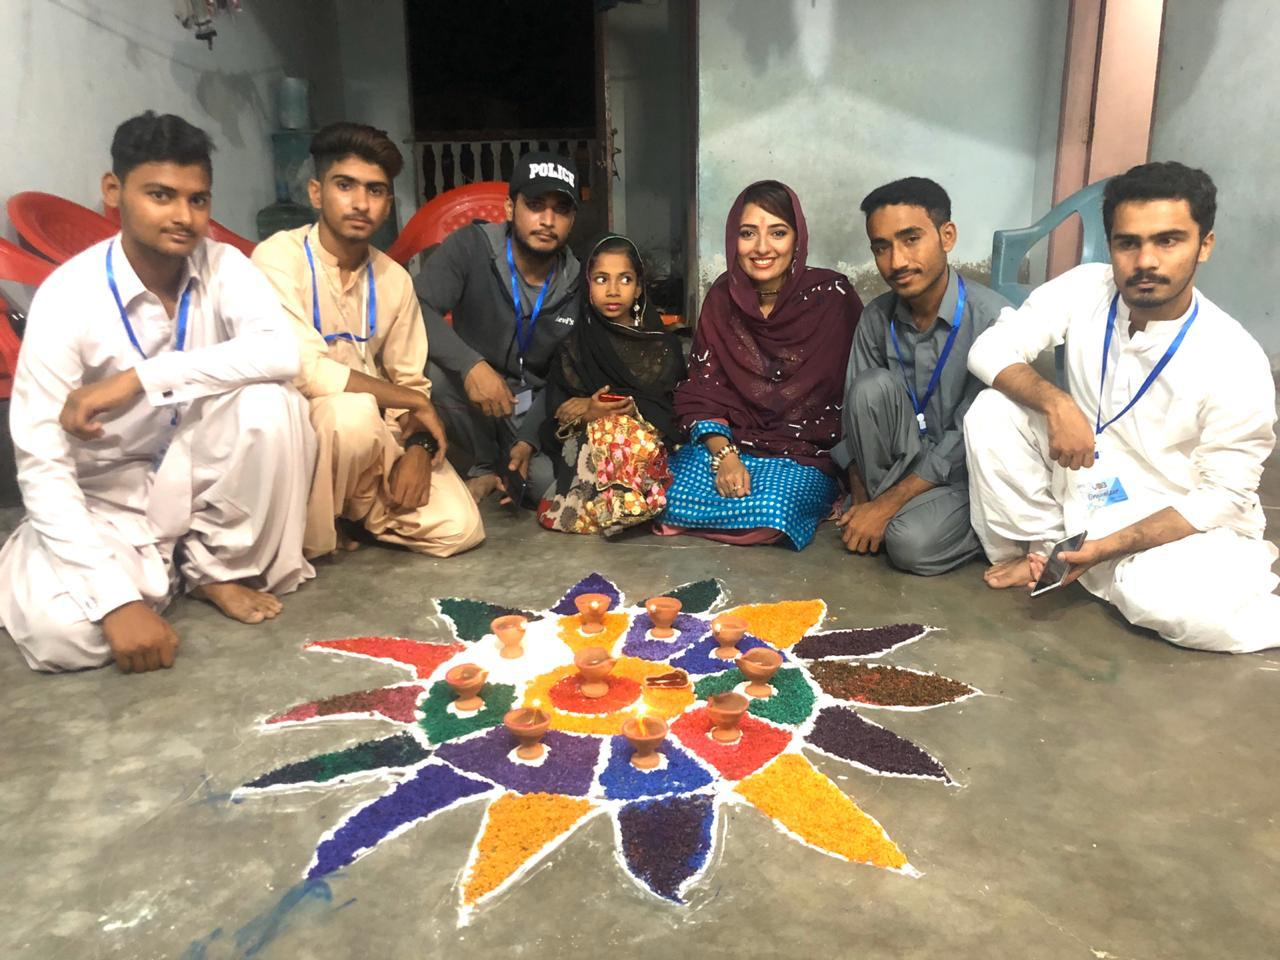 Wishes for Happy Diwali: People of Hindu Community in Balochistan Celebrating Diwali Festival